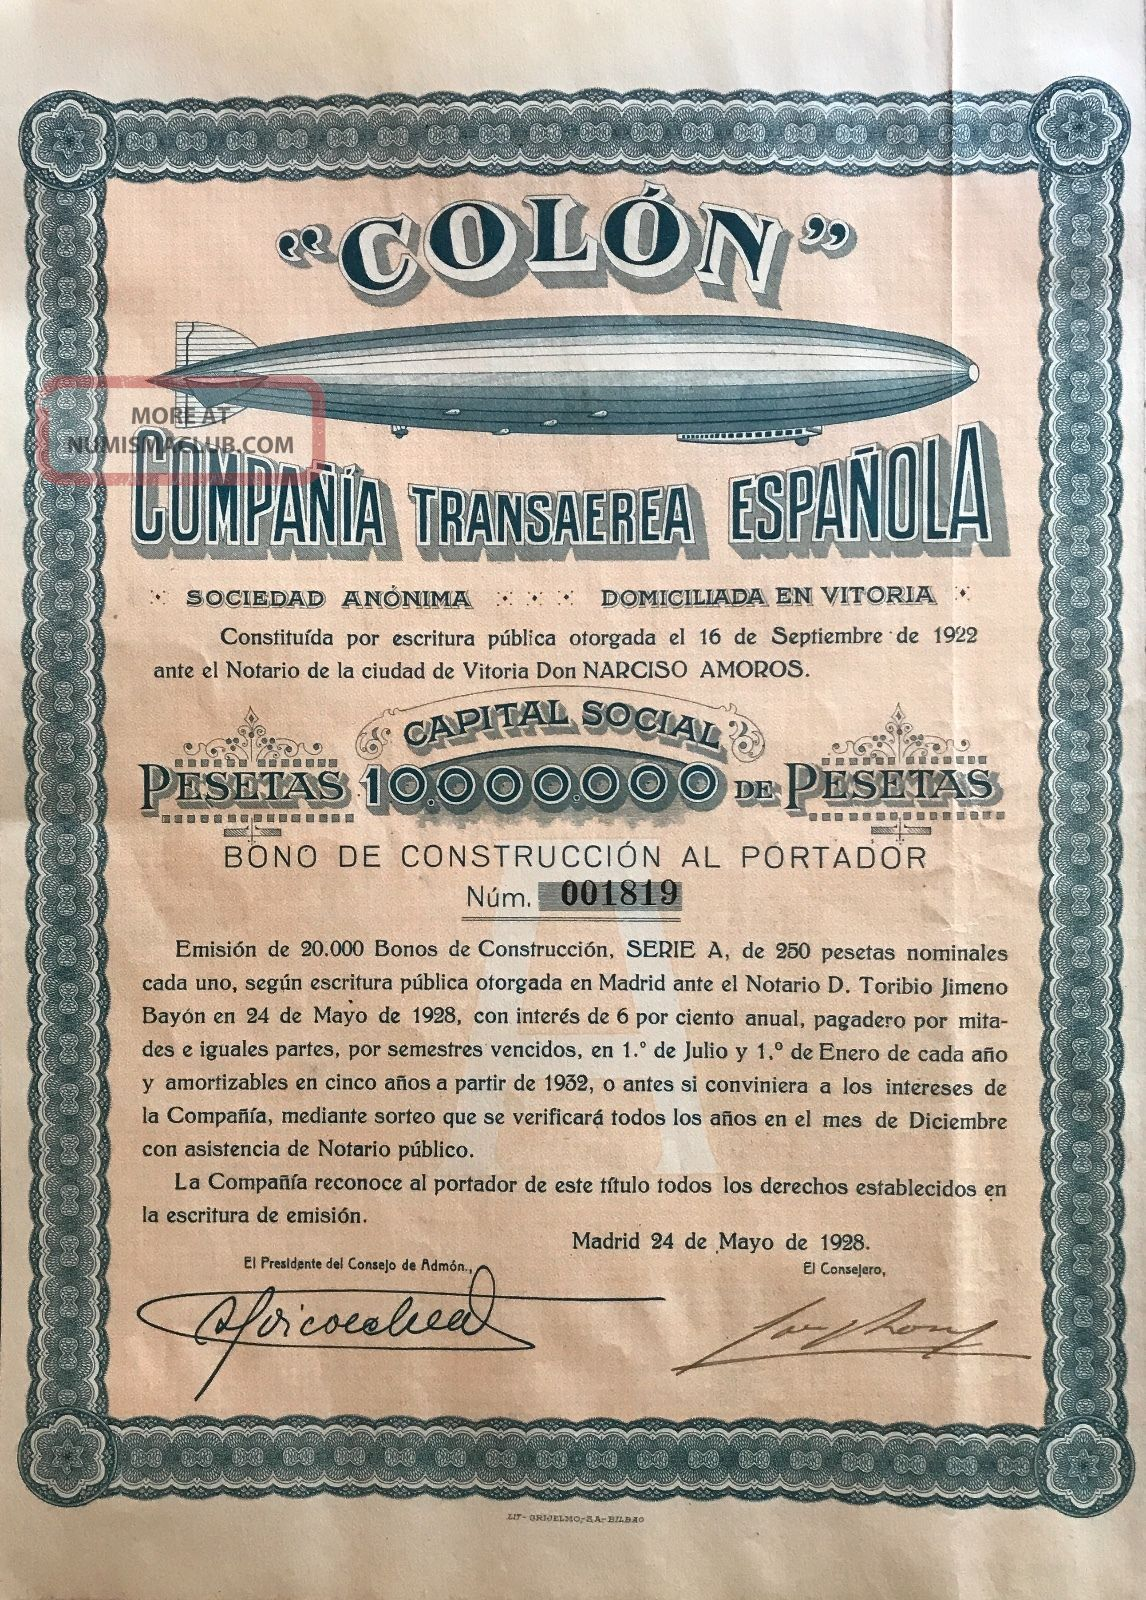 1928 Spain Spanish Zeppelin Airship Company Stock Certificate Construction Bond Transportation photo